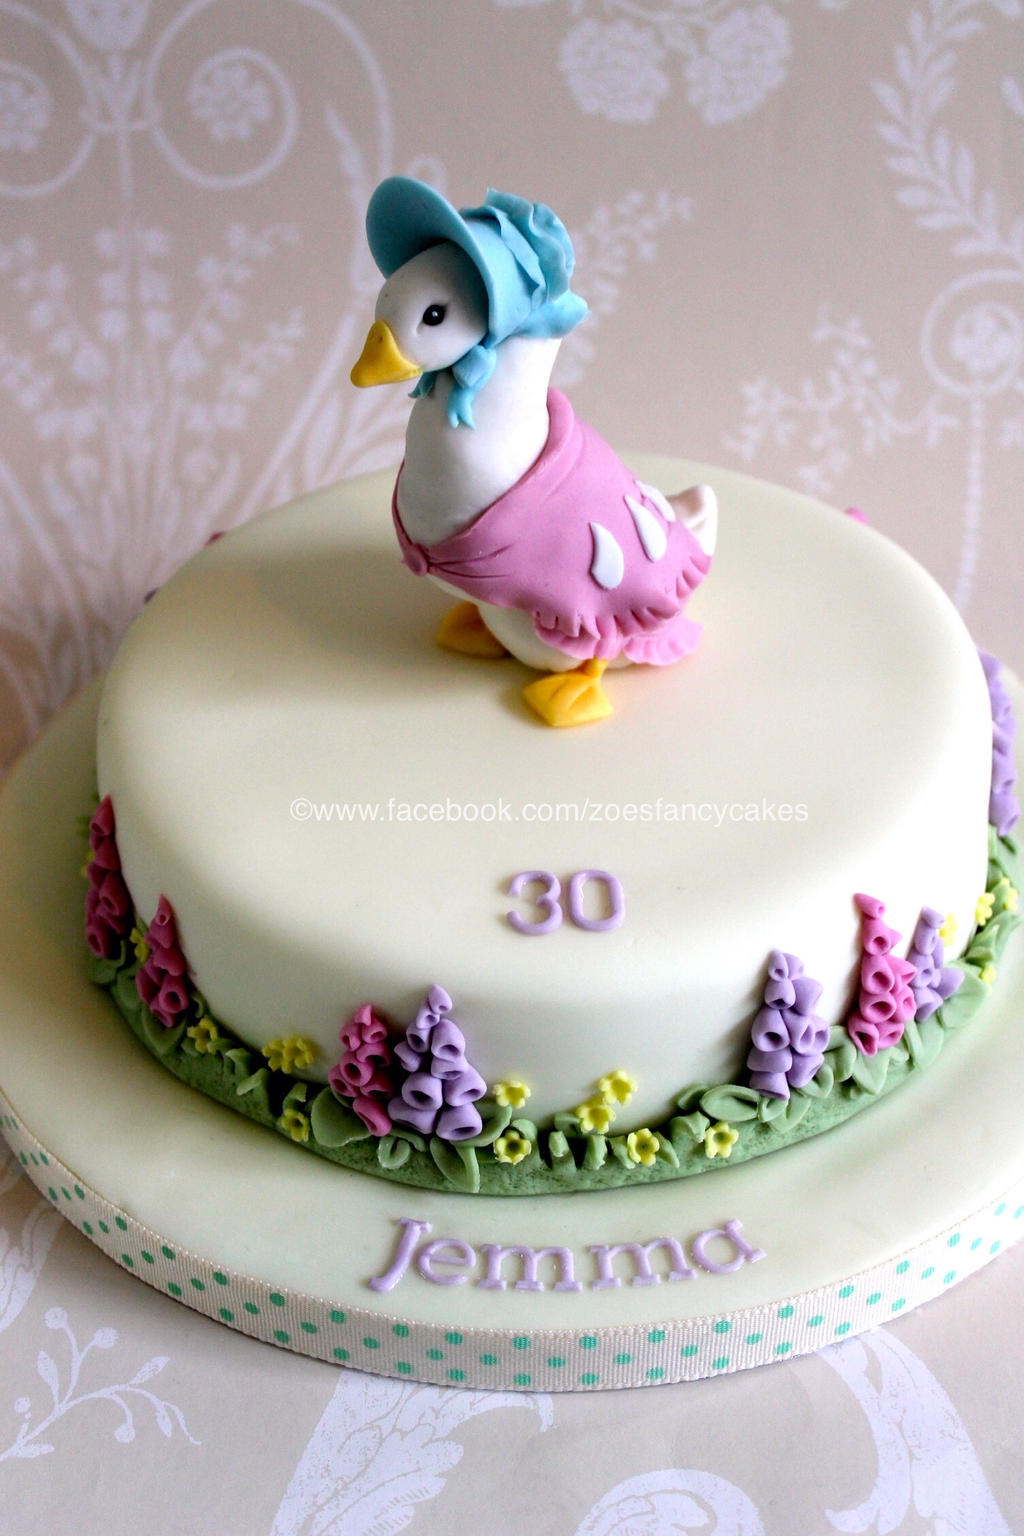 Jemima Puddle Duck Cake Topper